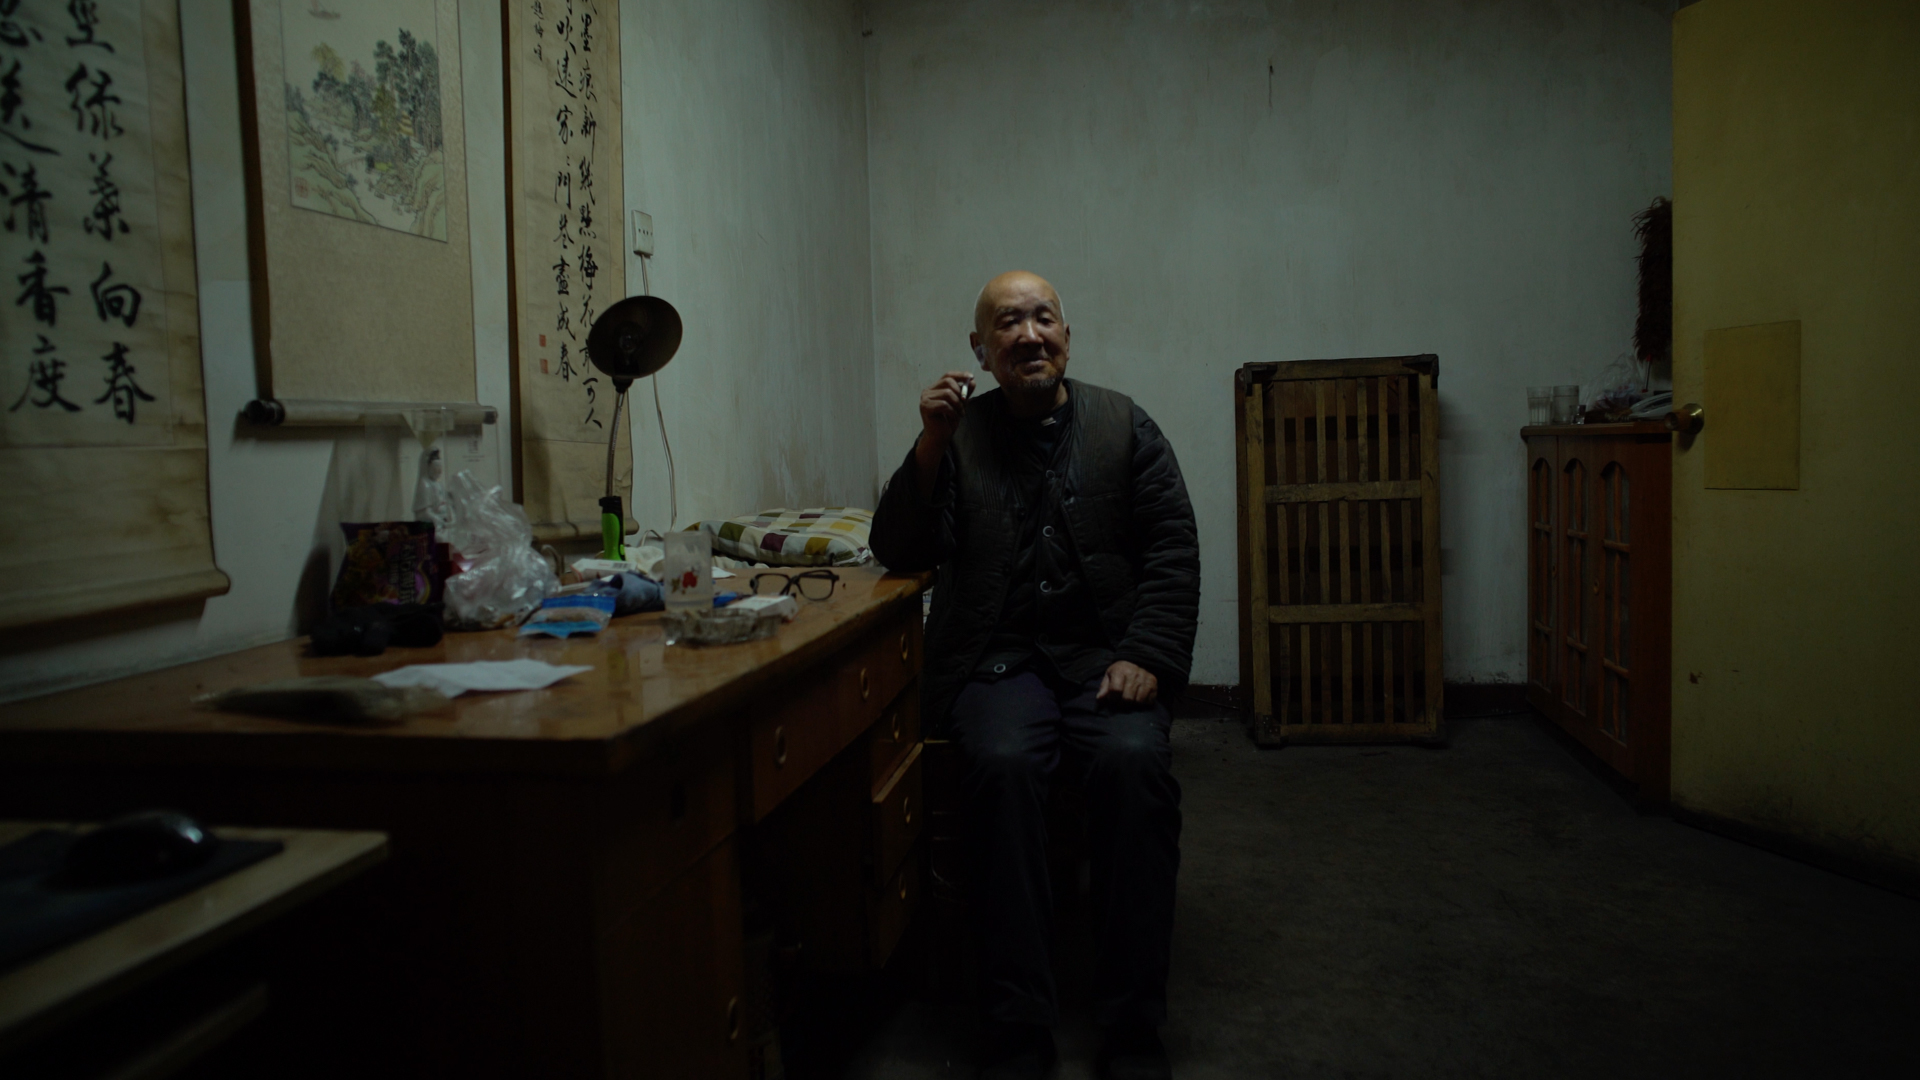 Directed by Wang Bing